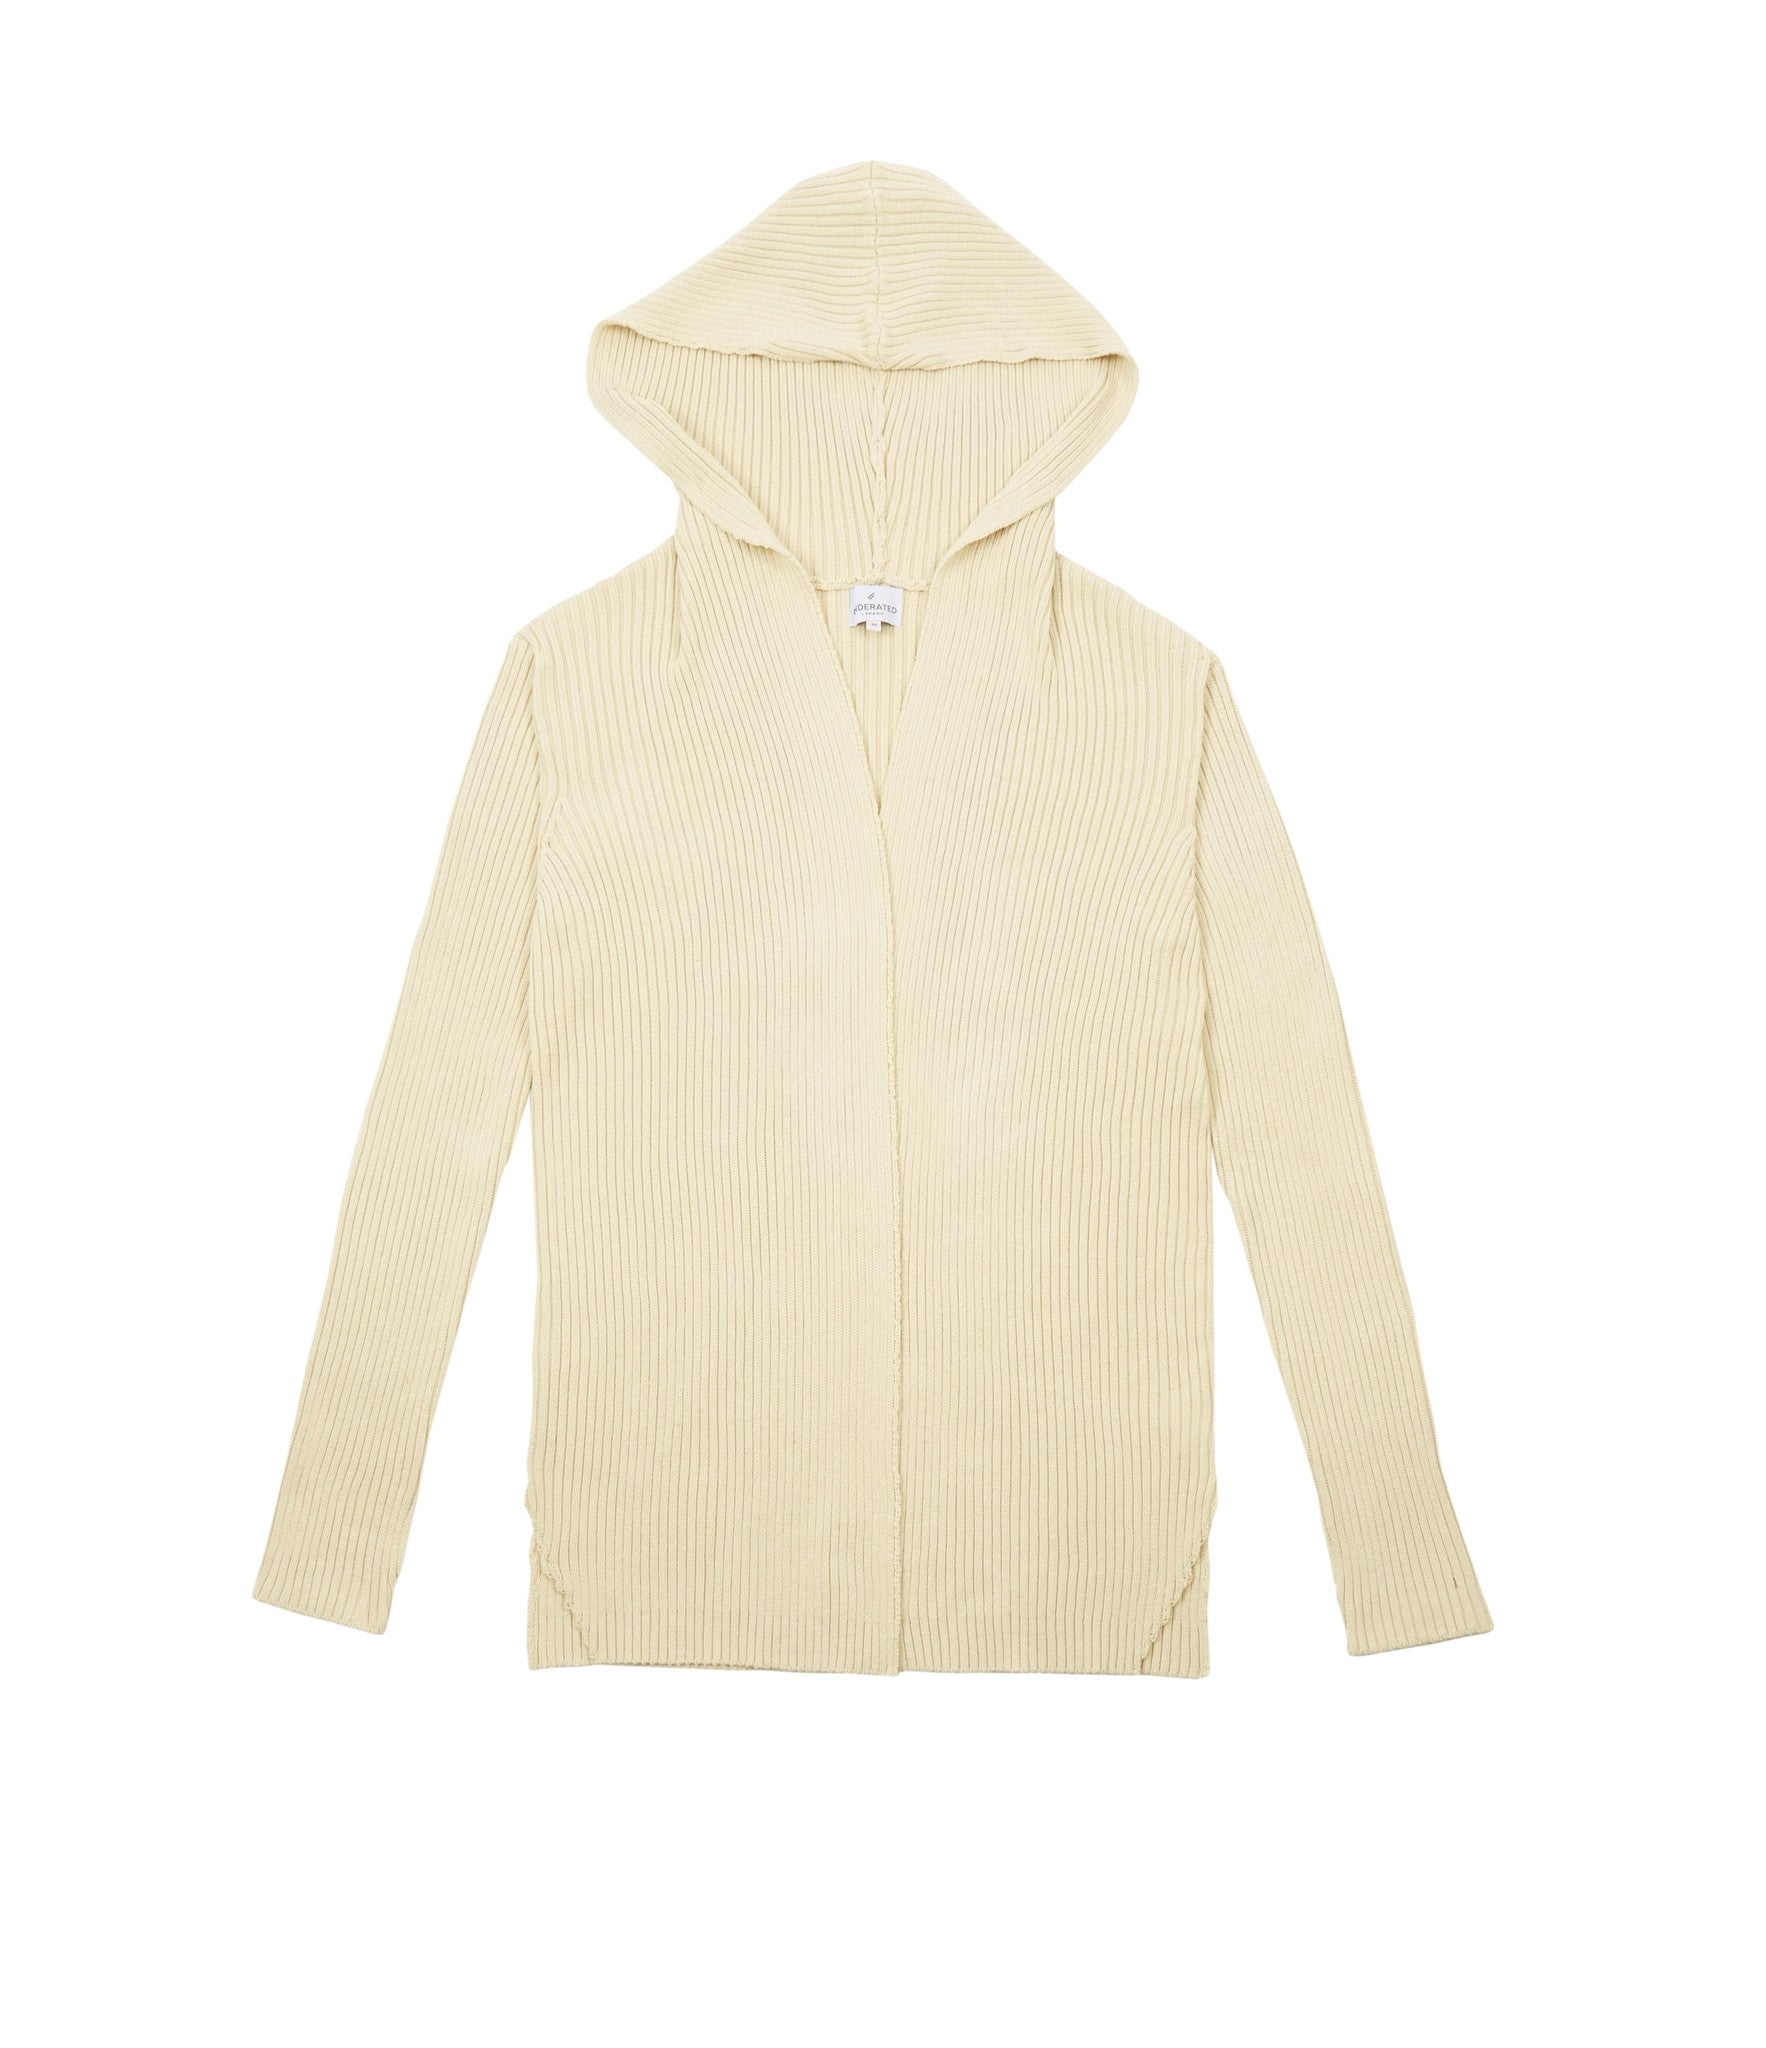 Underated - Hooded Knit Cardigan - COMMON  - 1